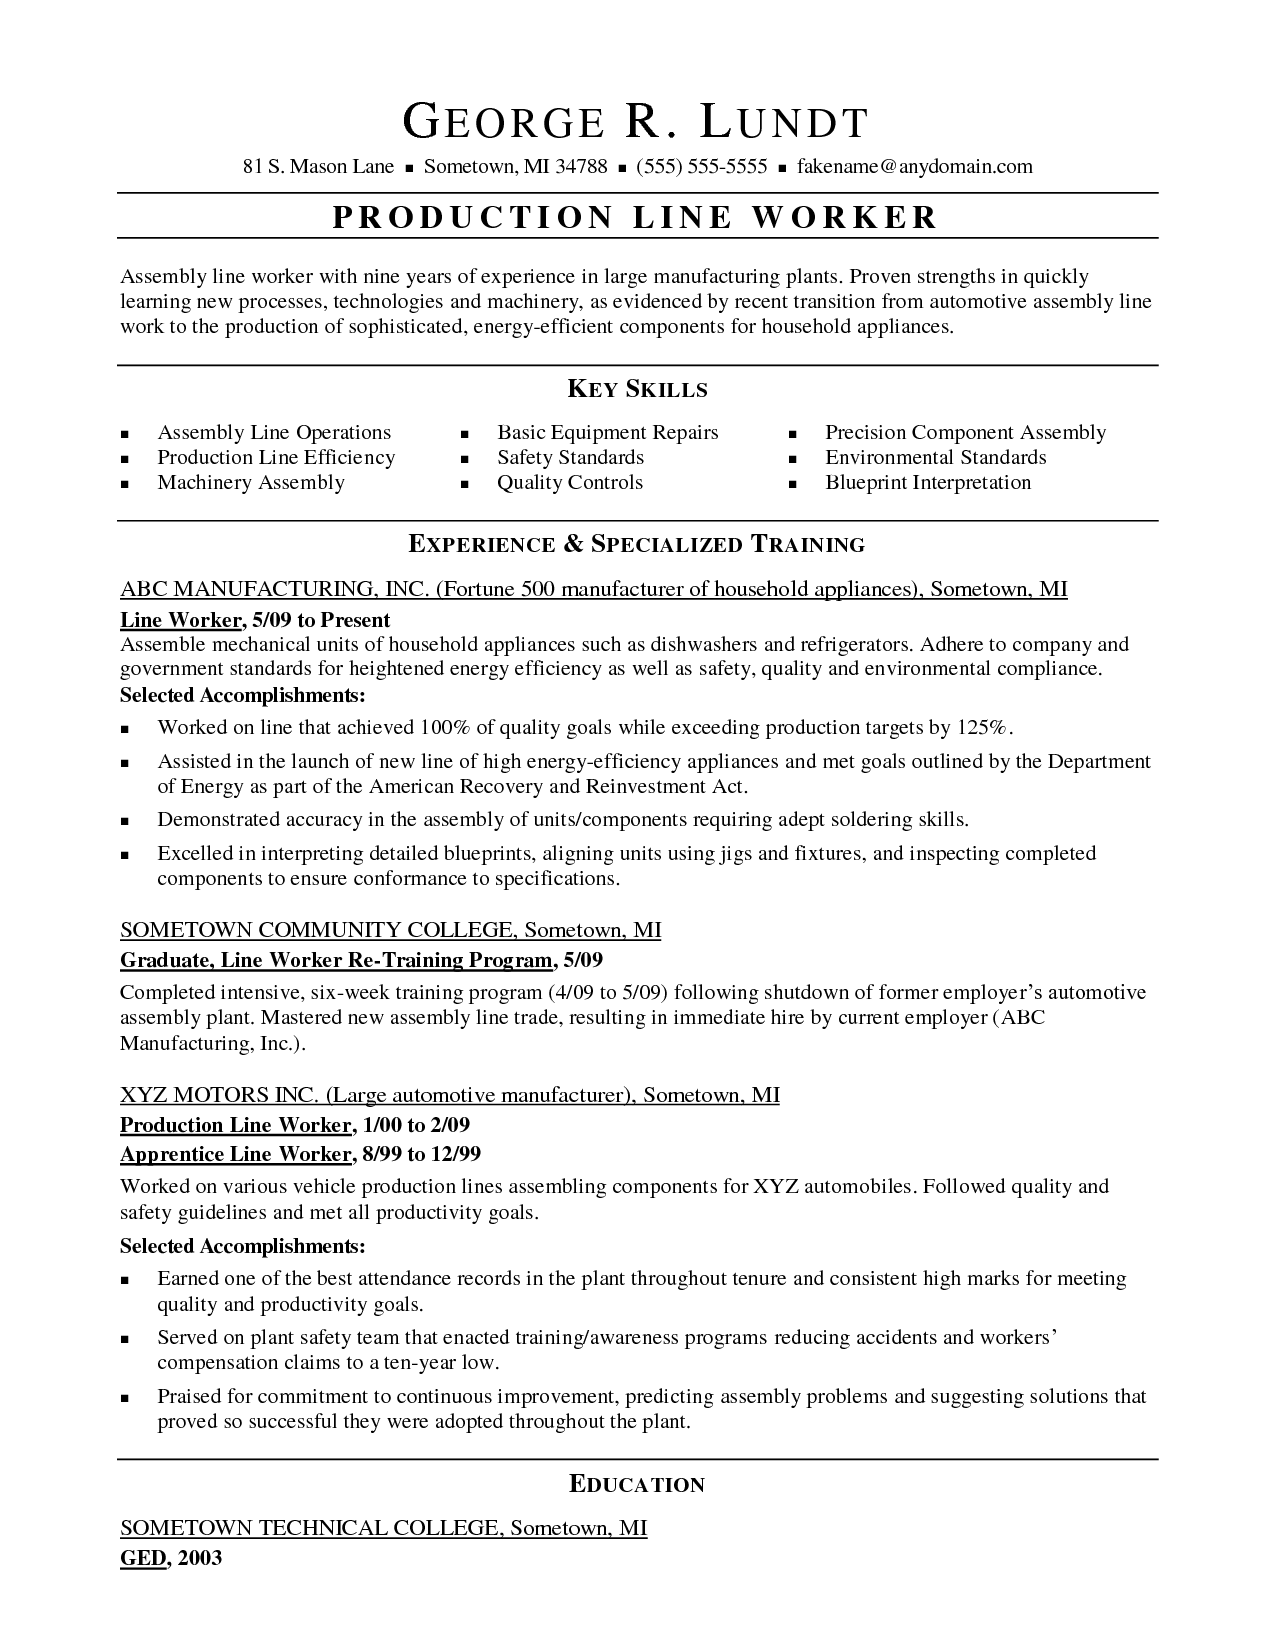 Sample Resume For Factory Worker Bizdoska Com Doc Pin Biodata Marriage Youtube Background Template Line Worker Job Resume Samples Resume